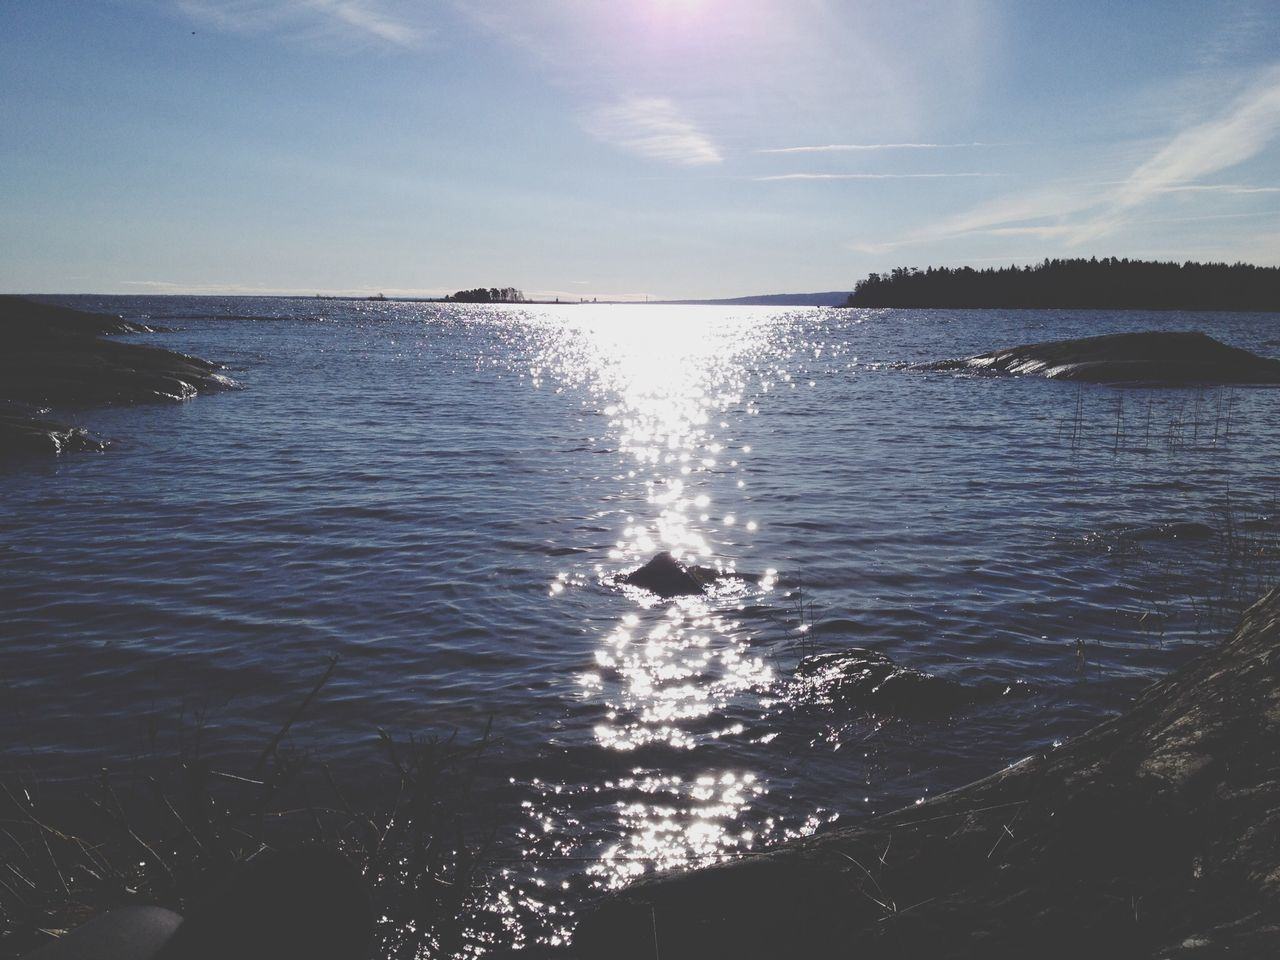 water, sea, nature, sky, beauty in nature, tranquility, outdoors, no people, scenics, sunlight, waterfront, day